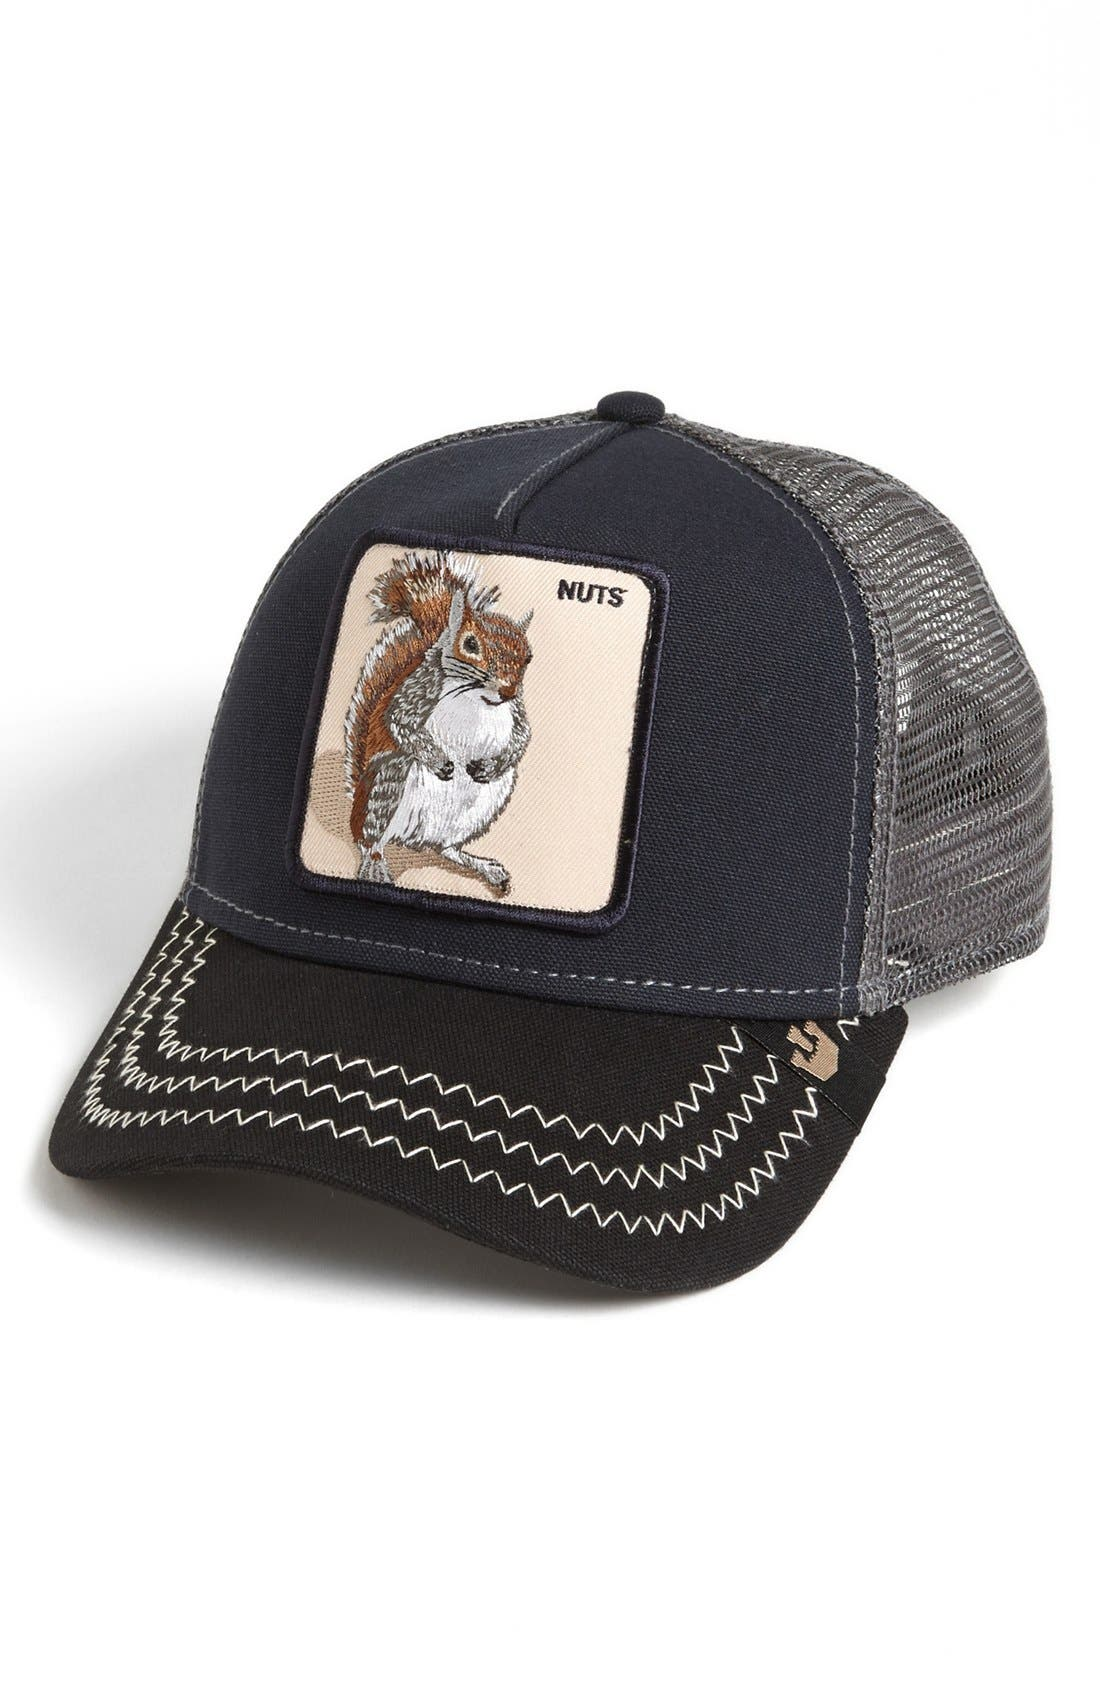 'Animal Farm - Squirrel Master' Snapback Trucker Hat,                         Main,                         color, NAVY